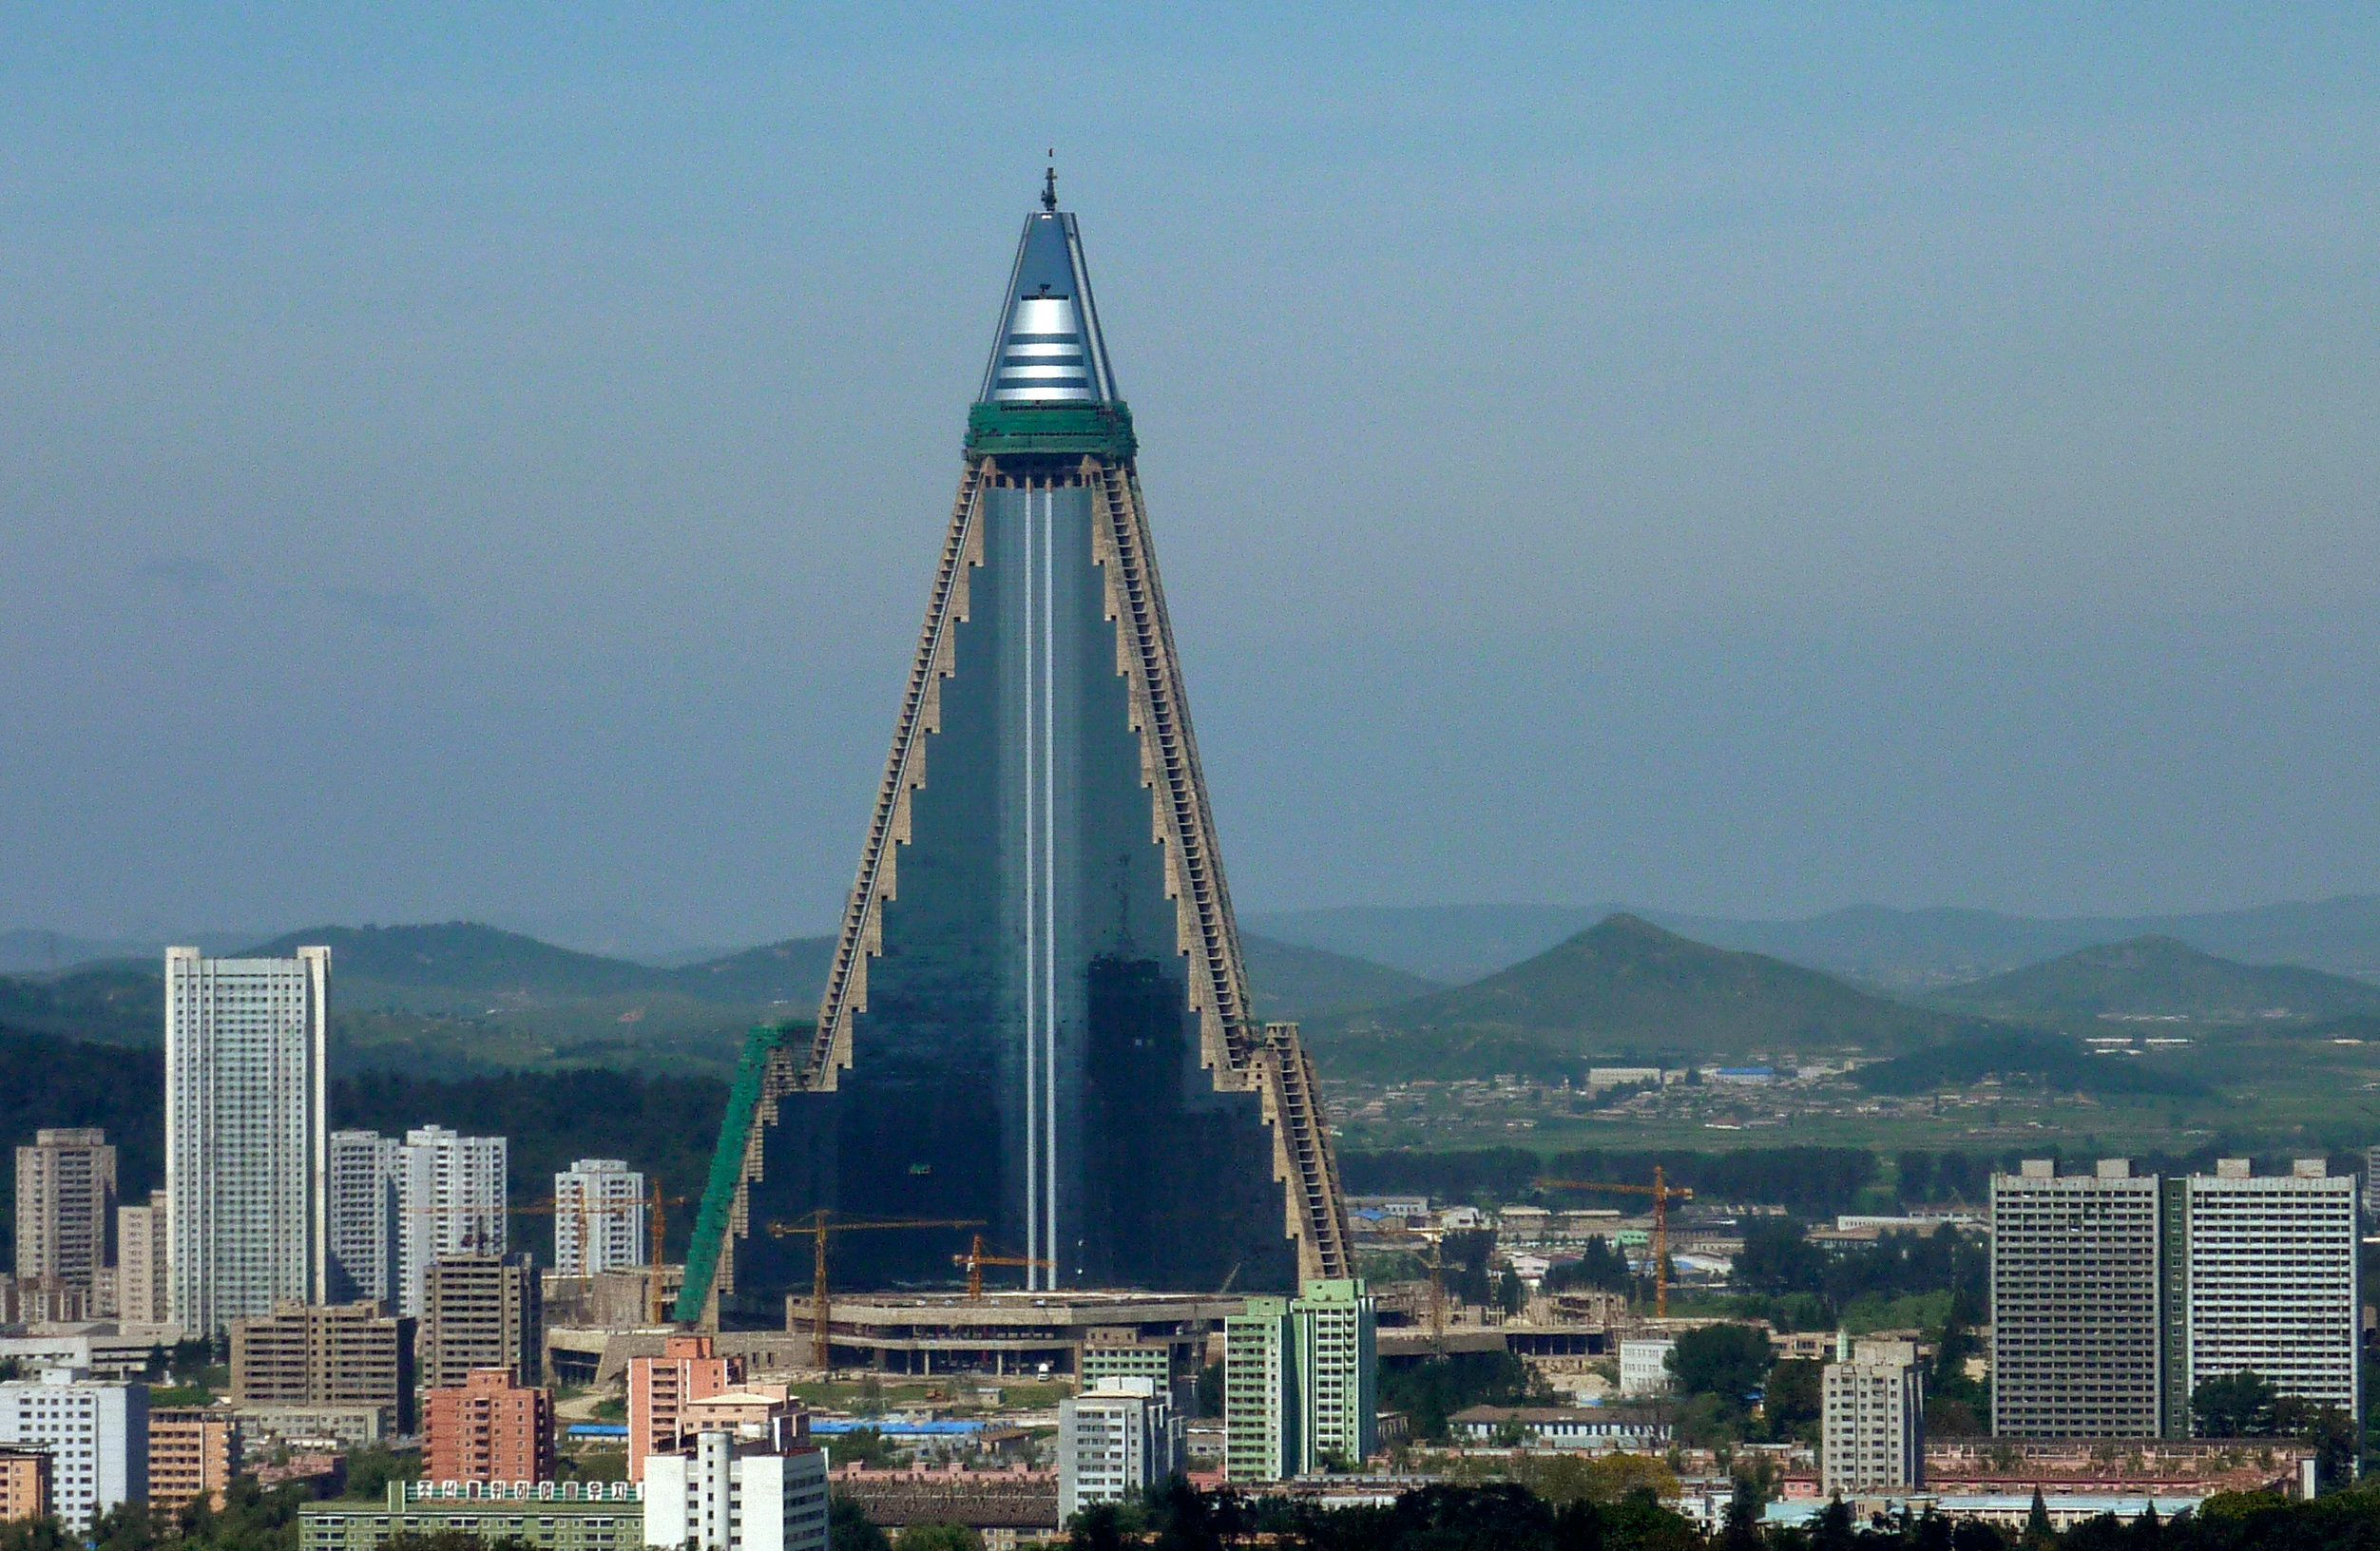 The 105-story Ryugyong Hotel has been abandoned for decades, but a new LED-like addition appears to have been added in recent